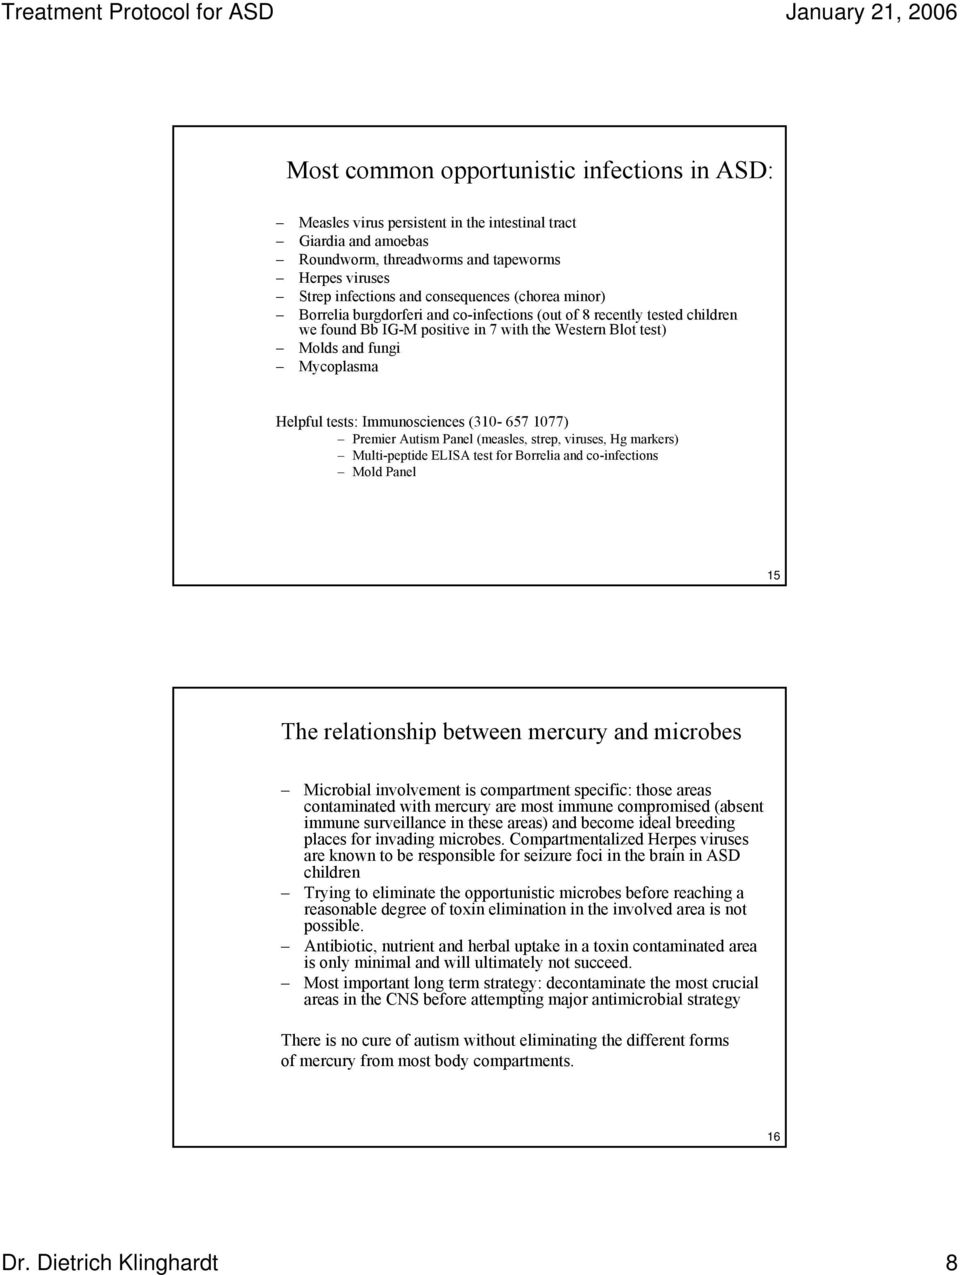 A Treatment Protocol for Autistic Spectrum Disorders (ASD